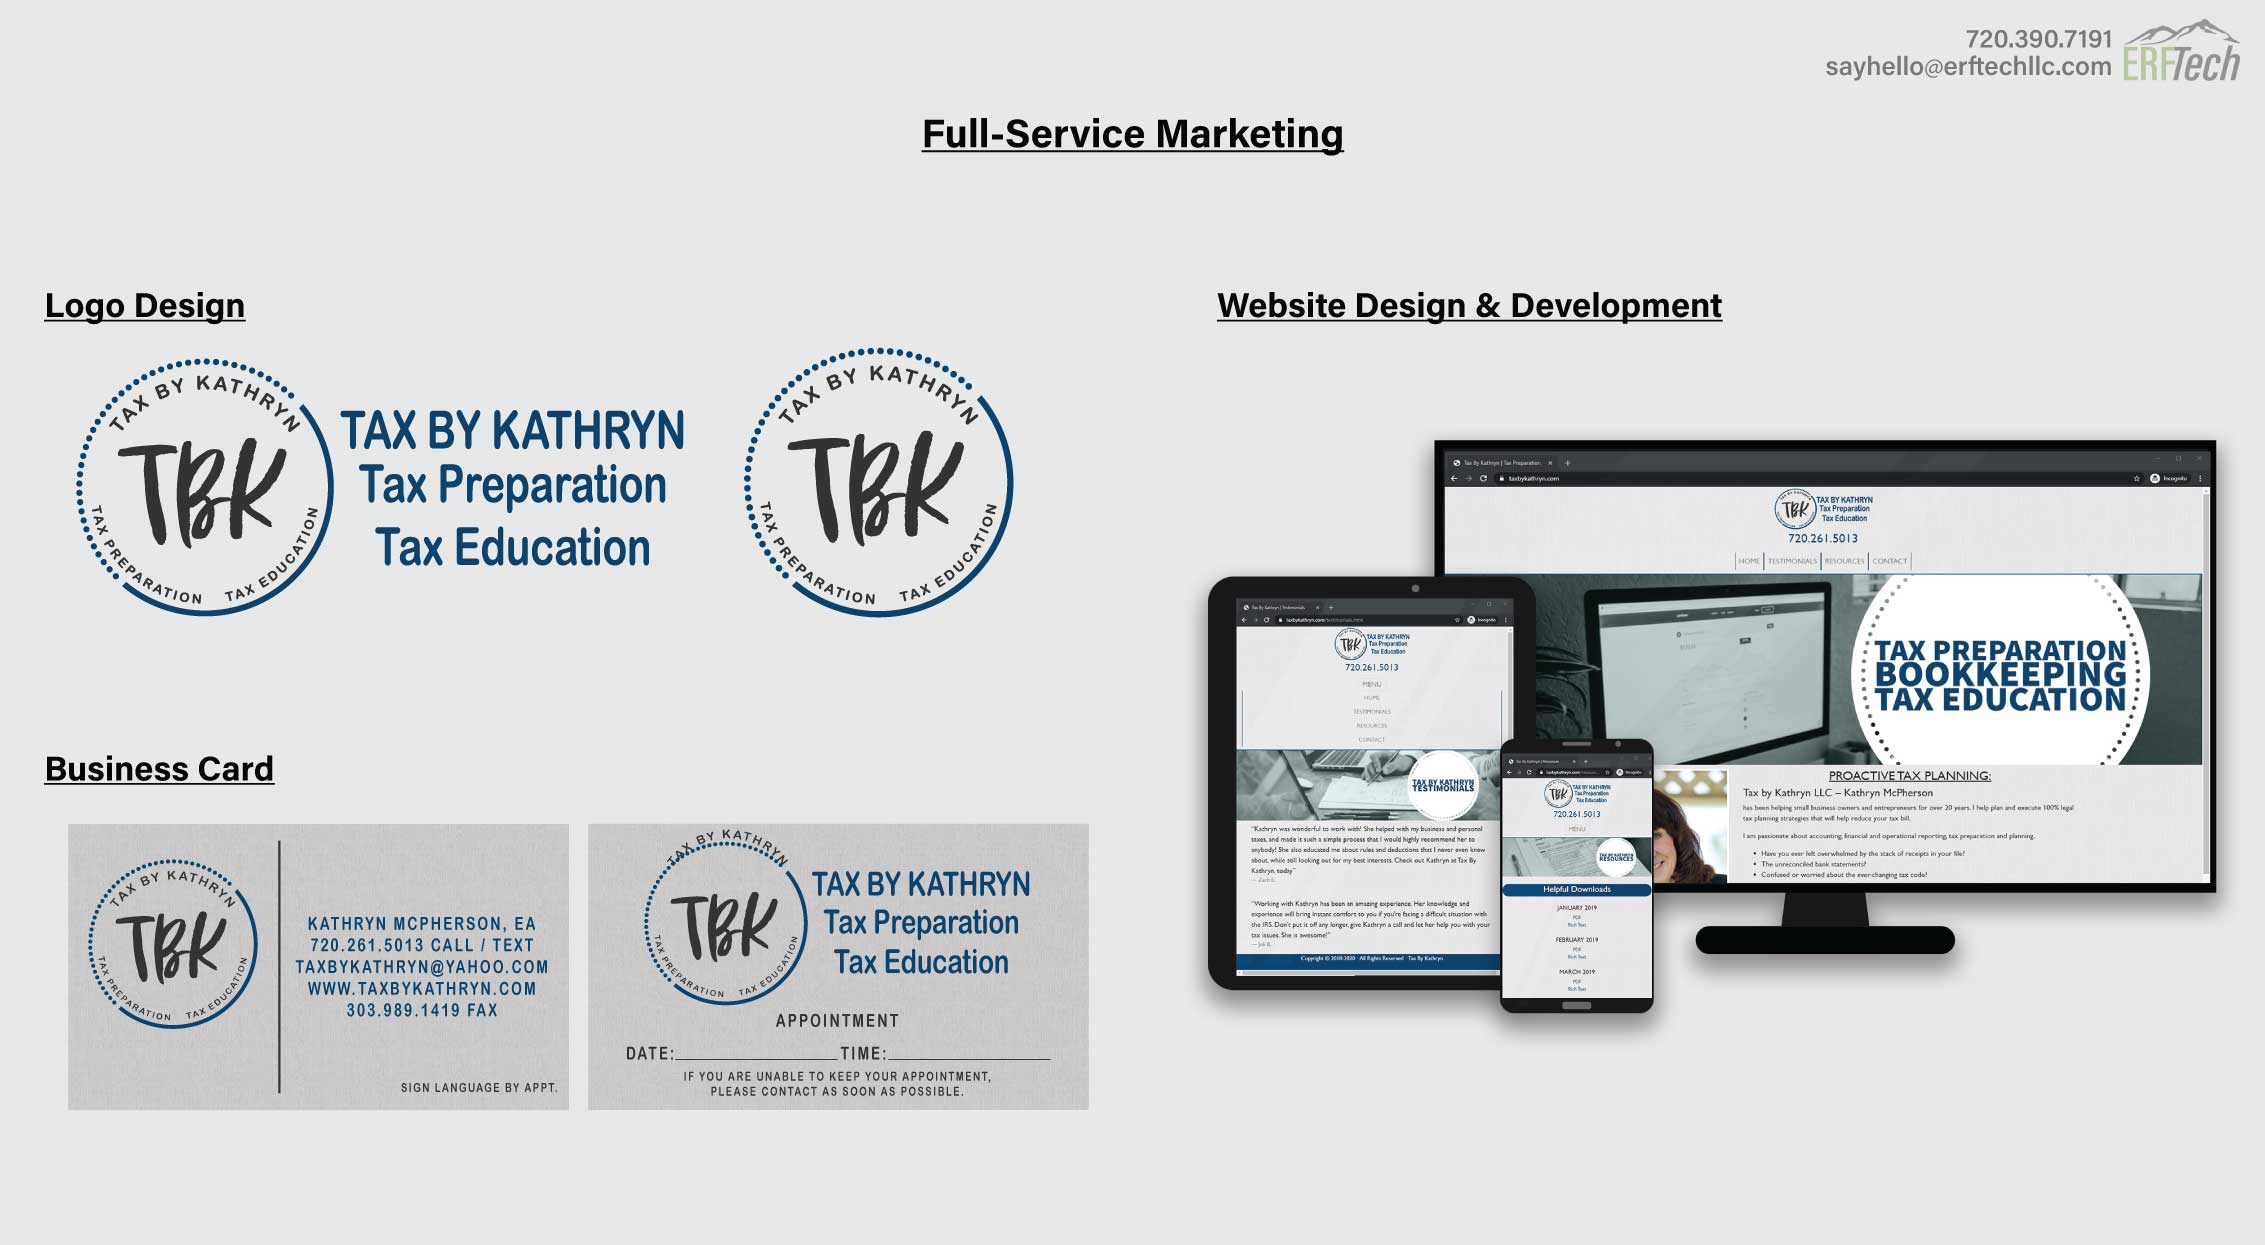 Full-Service Marketing for Tax by Kathryn in Lakewood, CO